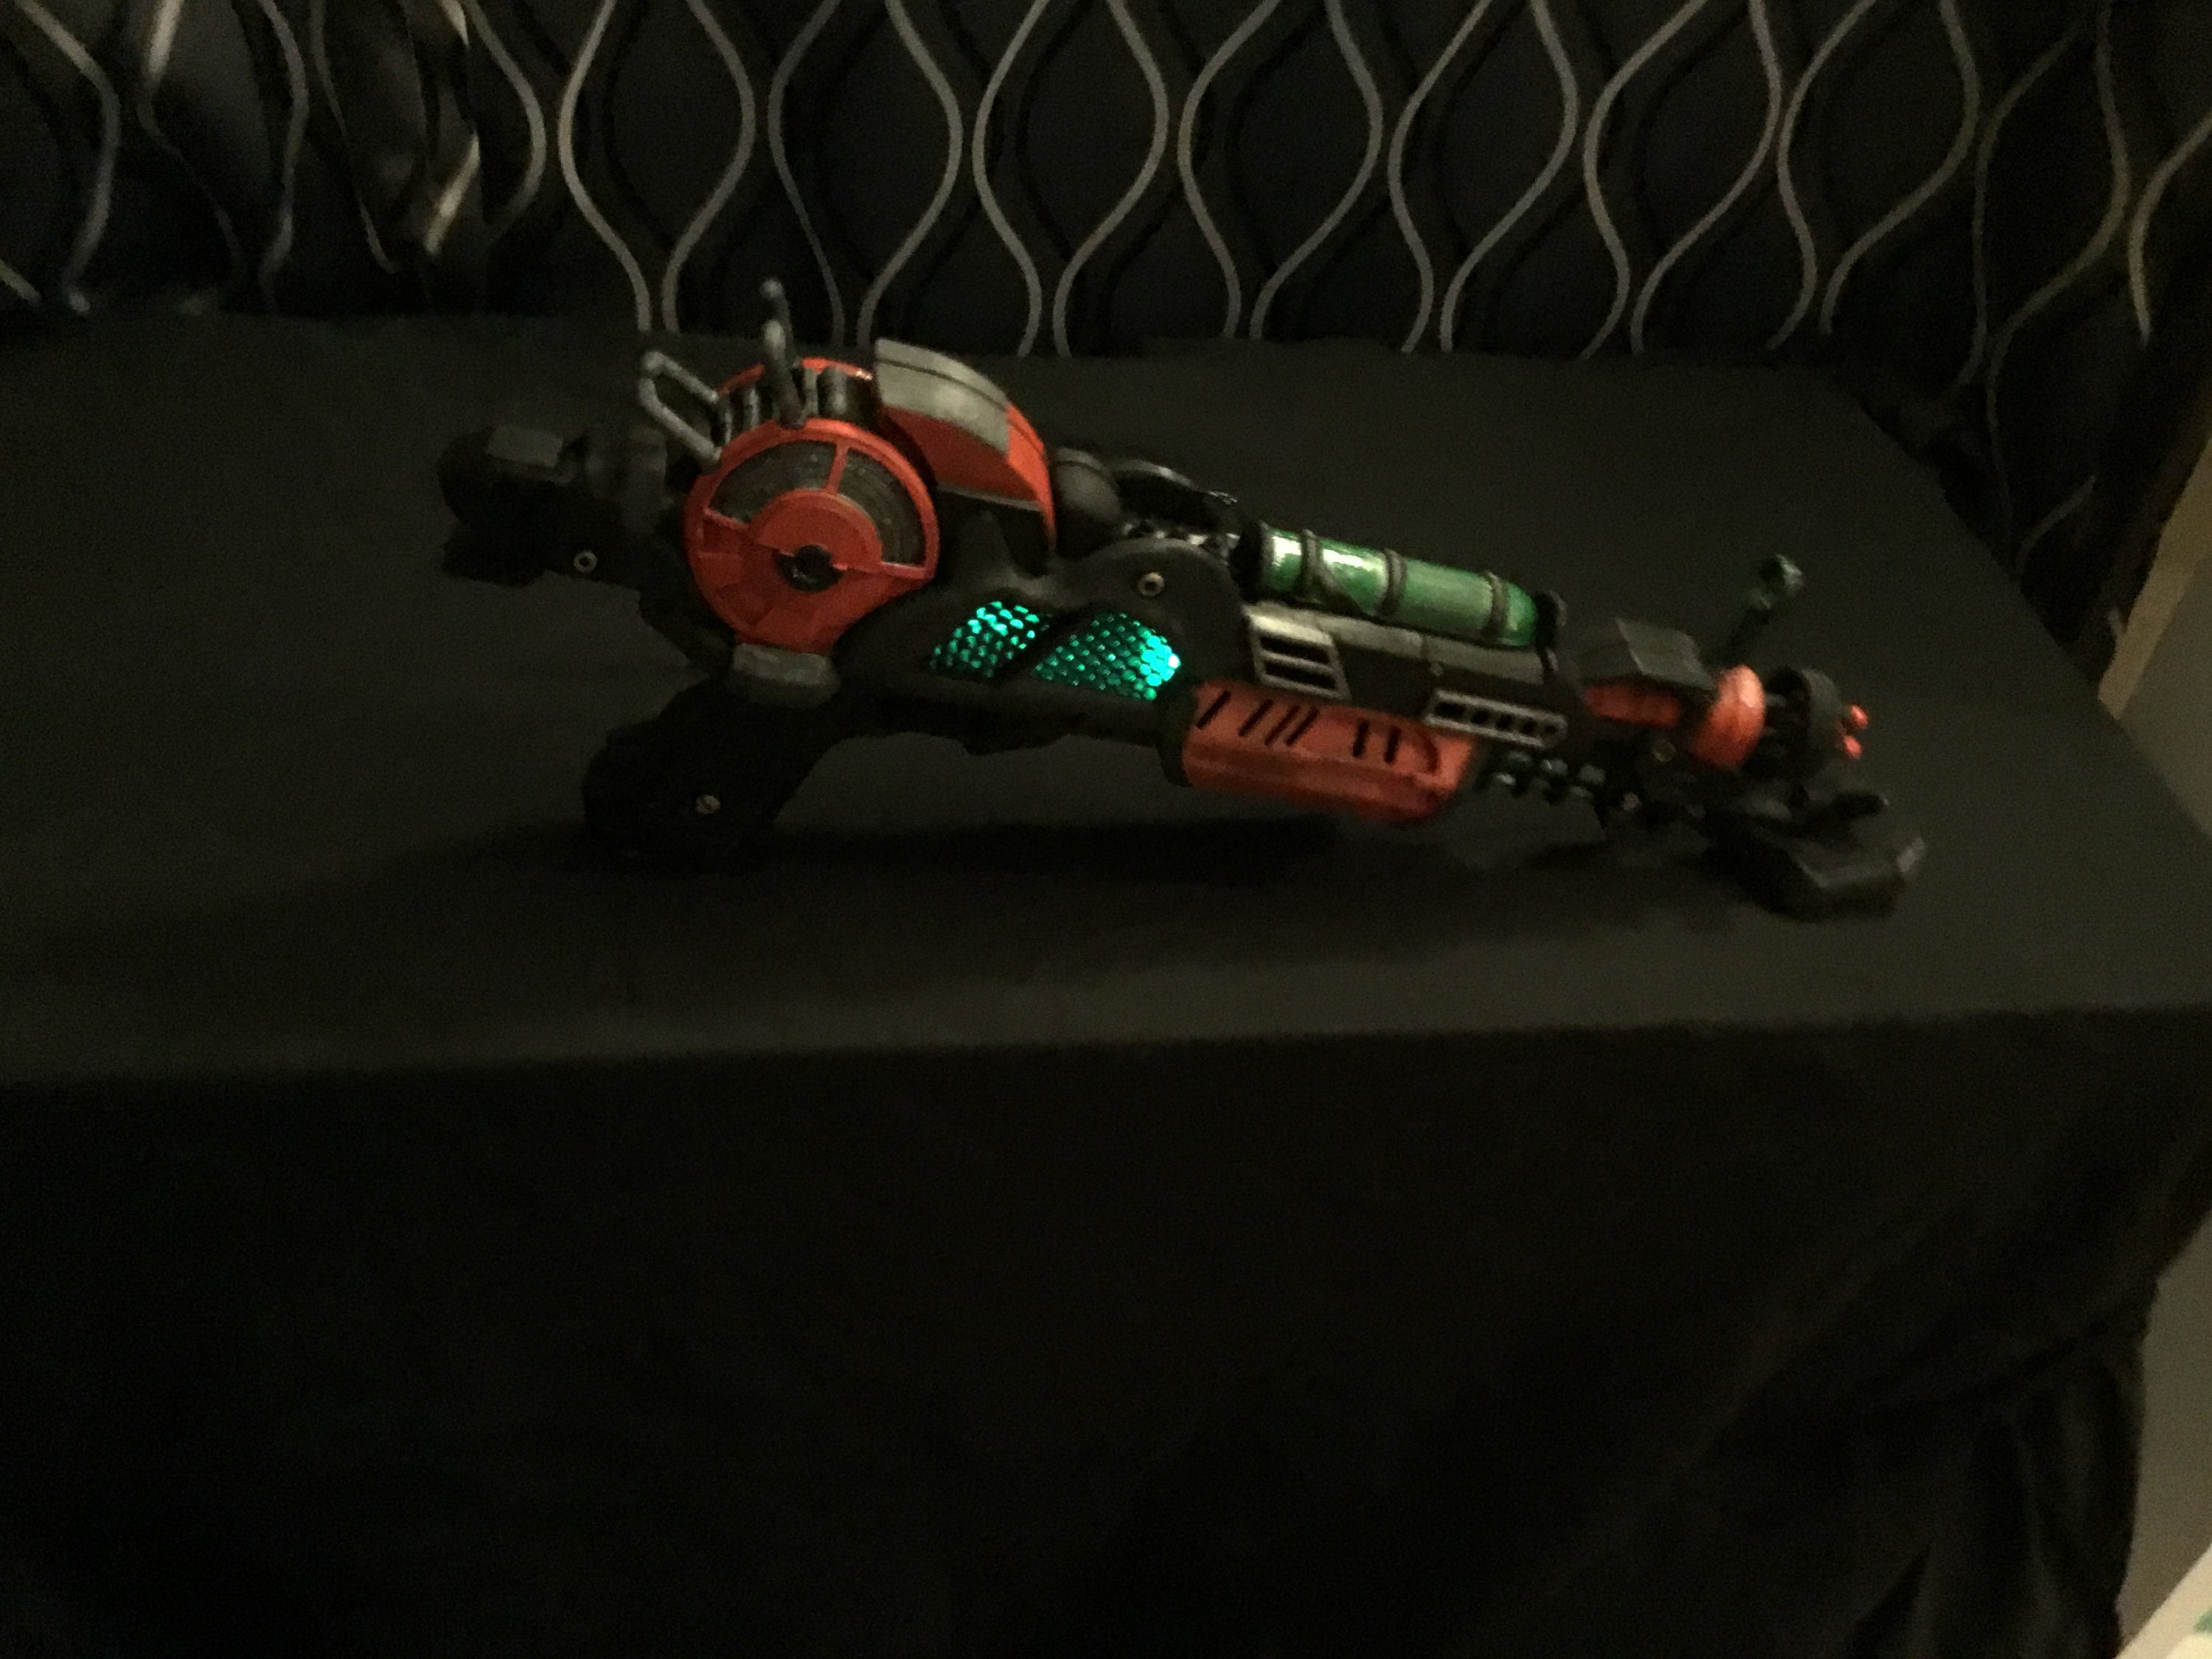 COD Black Ops 4 Mark 2 Replica with LED Lighting